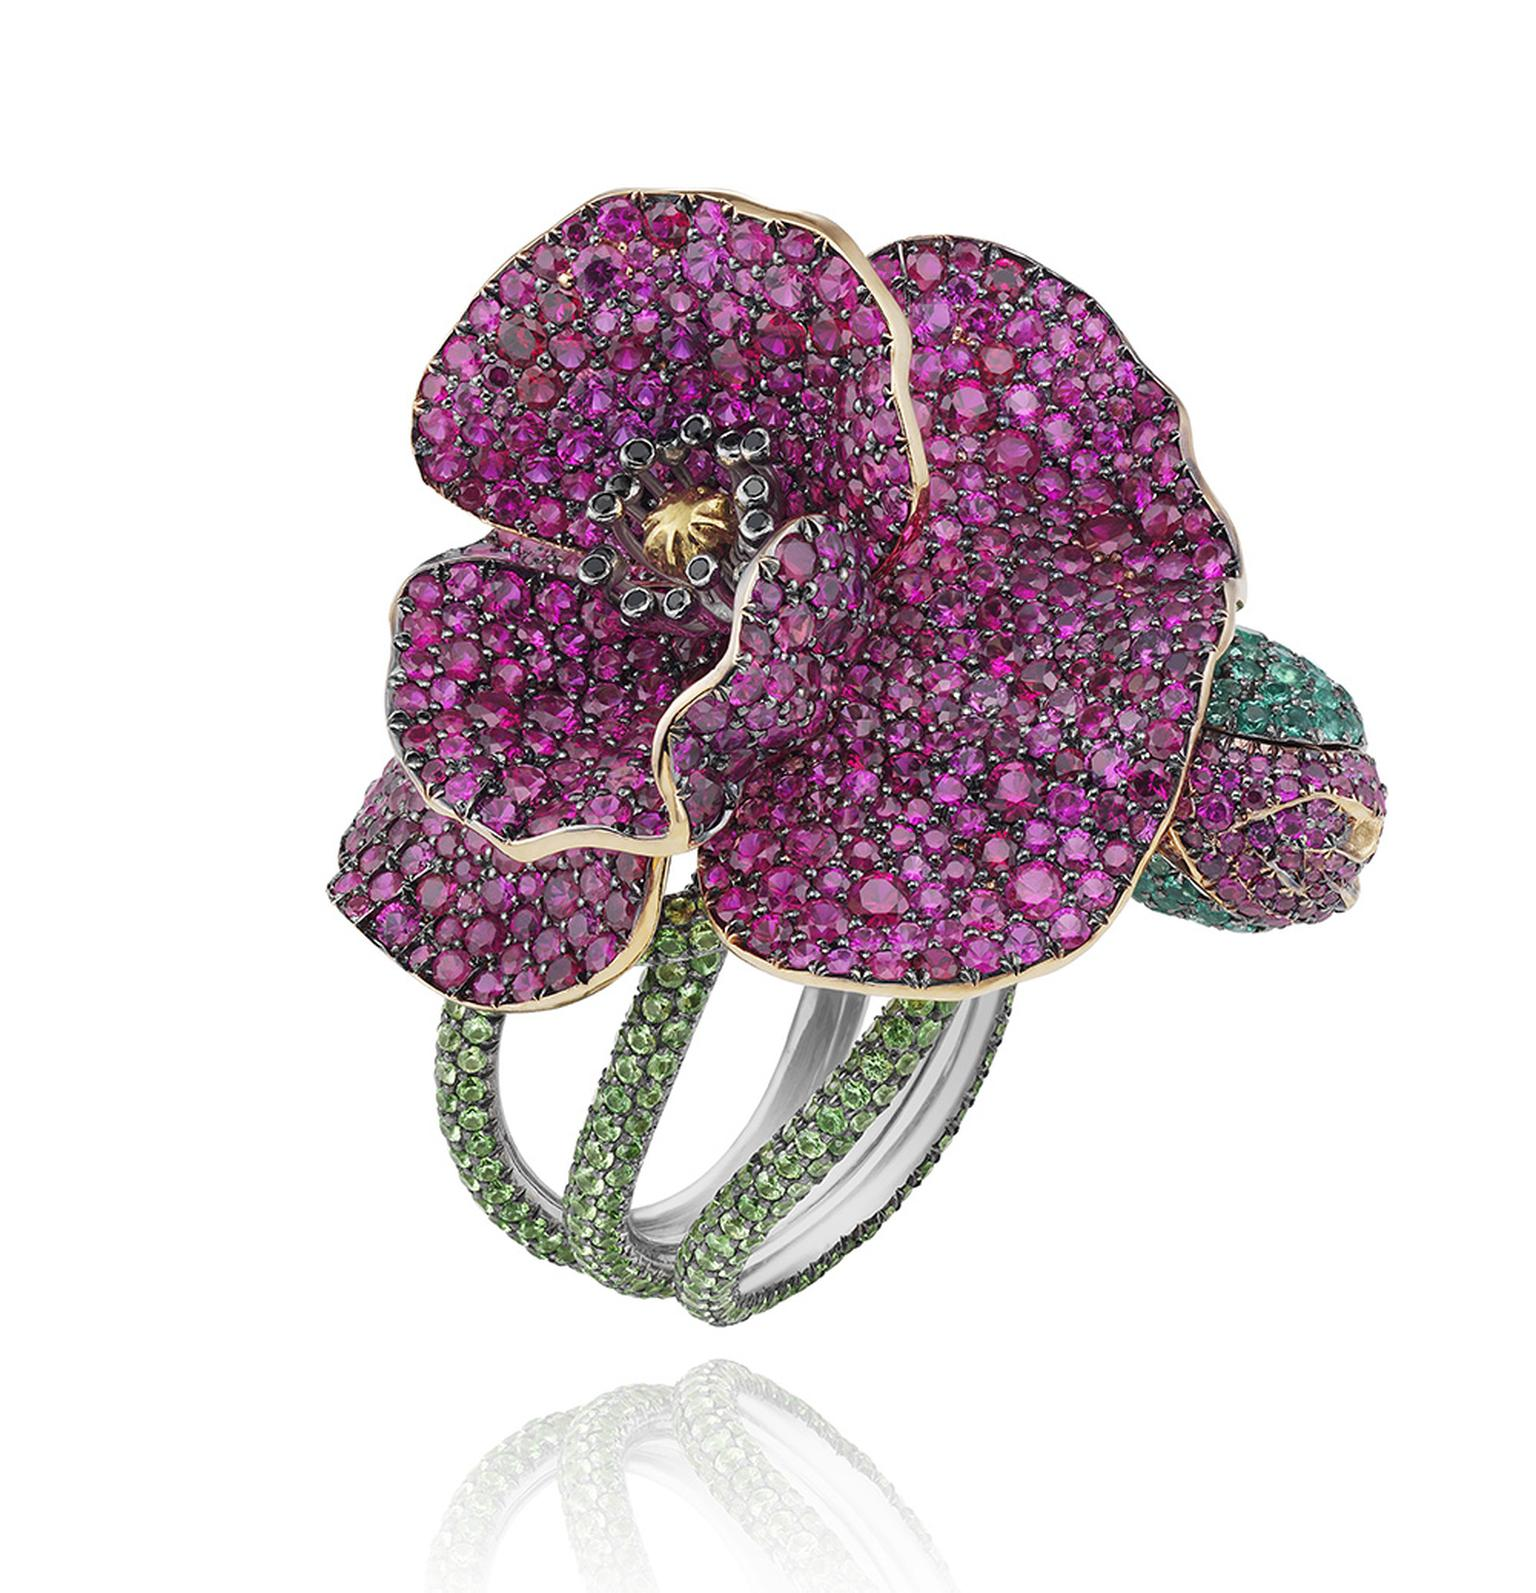 CHOPARDFlowerRingRedCarpetCollection2013.jpg